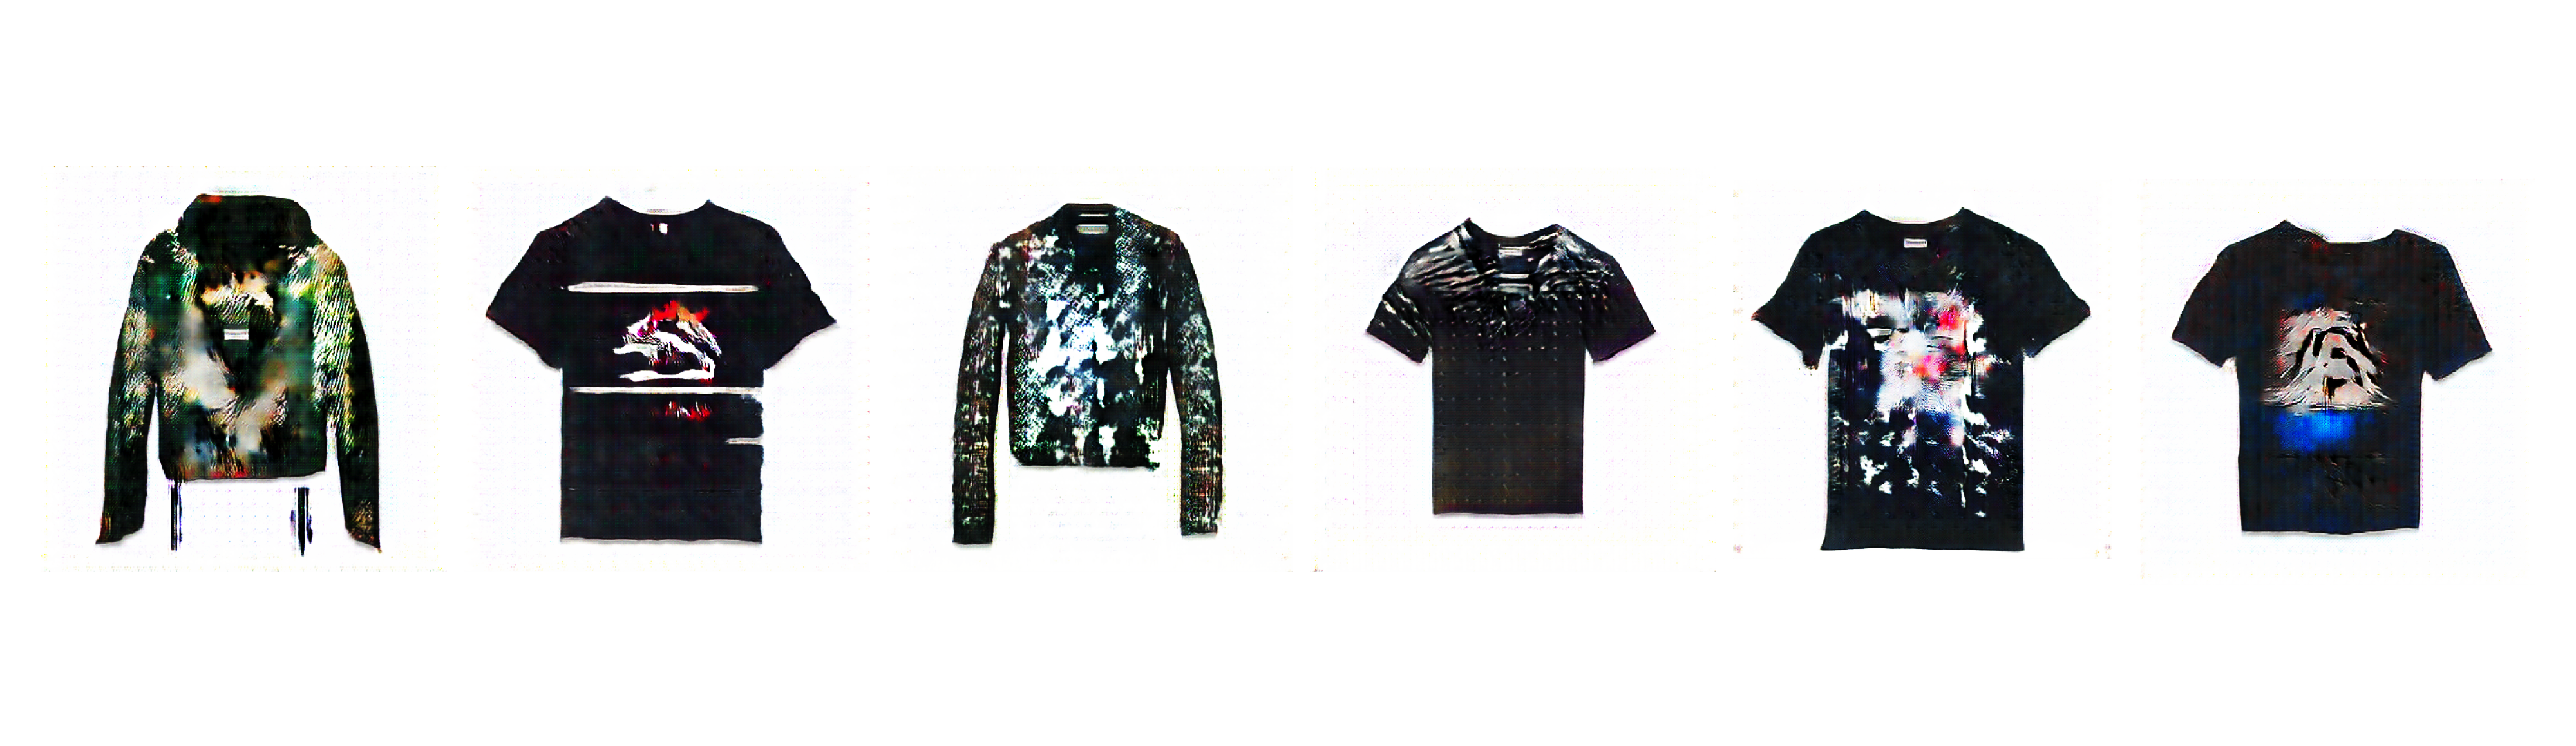 This example shows a series of fashion designs created by generative networks.